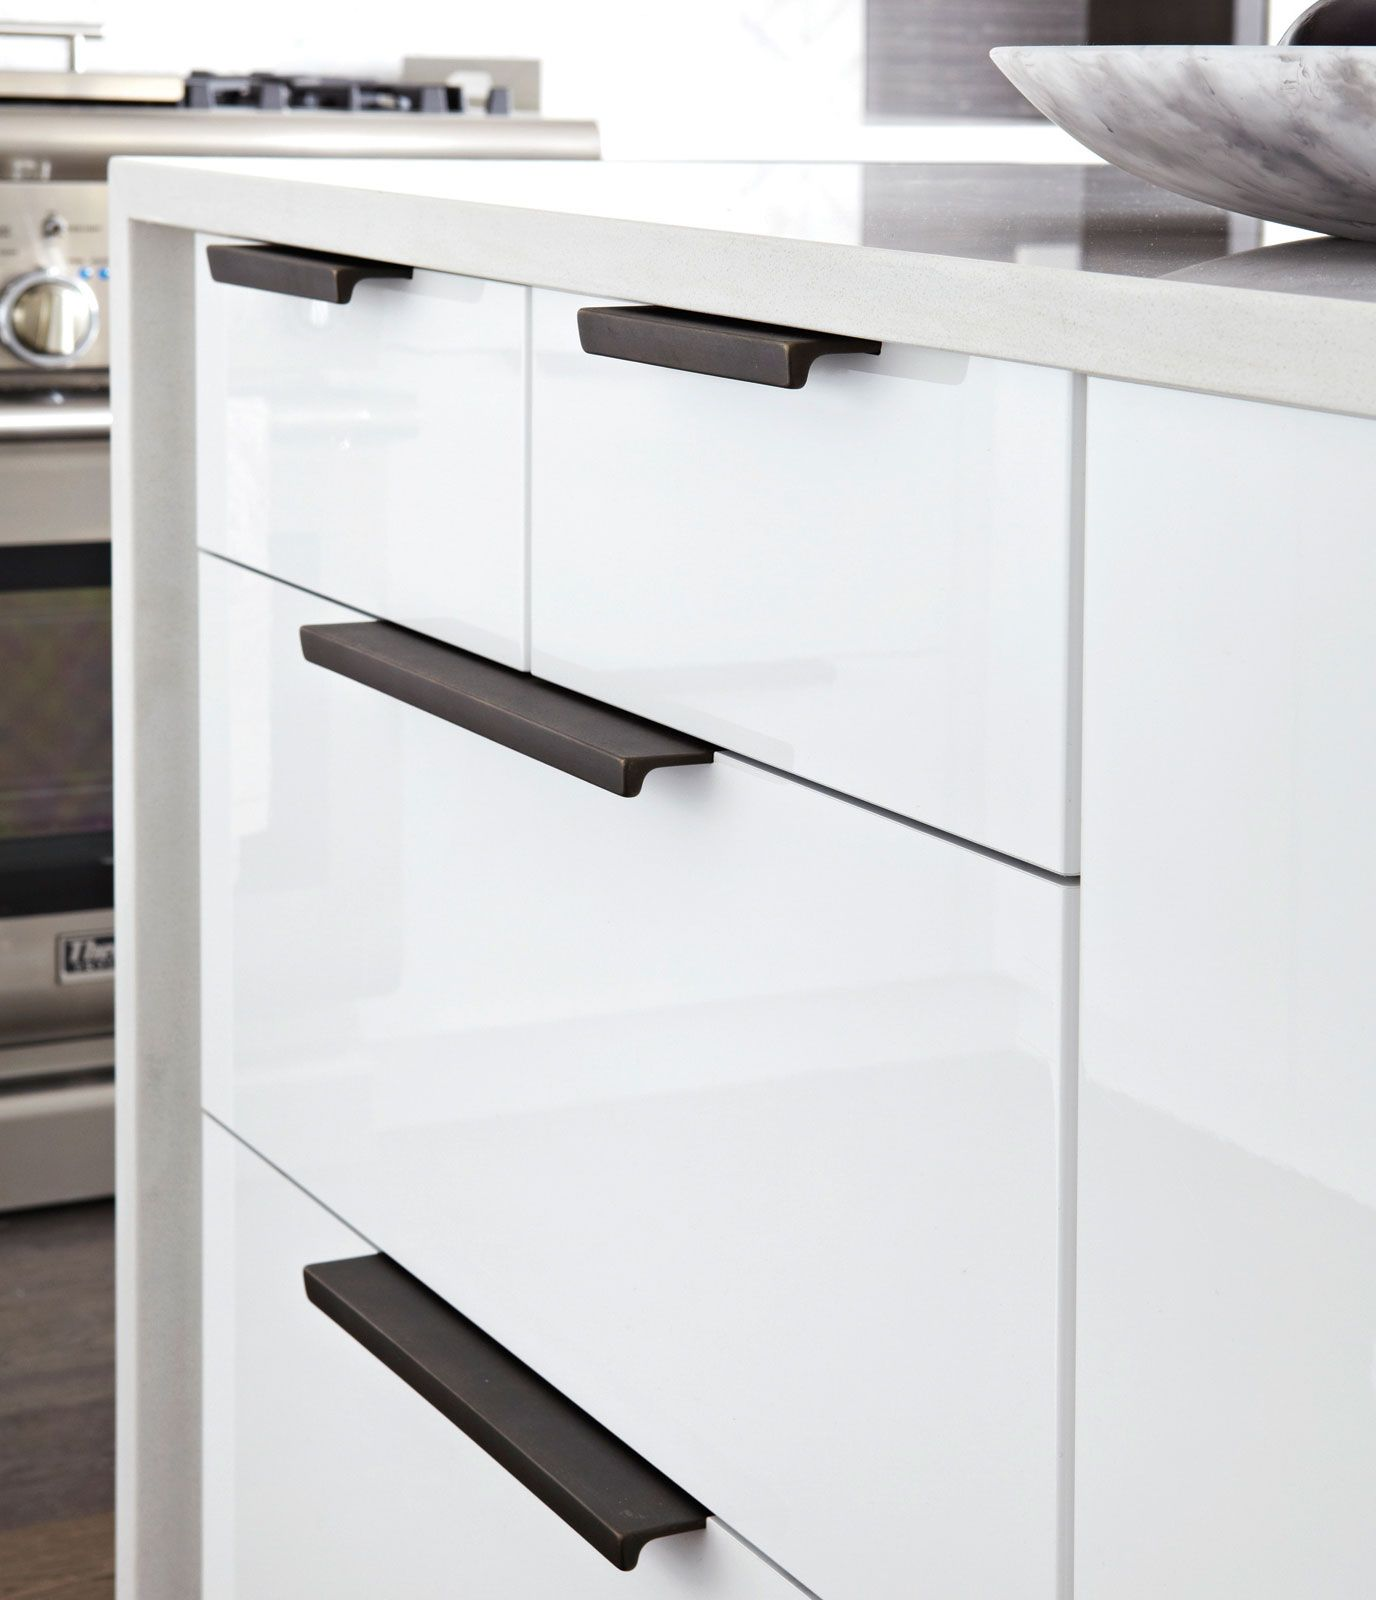 Glkitchen Cabinet Hardware: Contemporary Kitchen Gallery In 2020